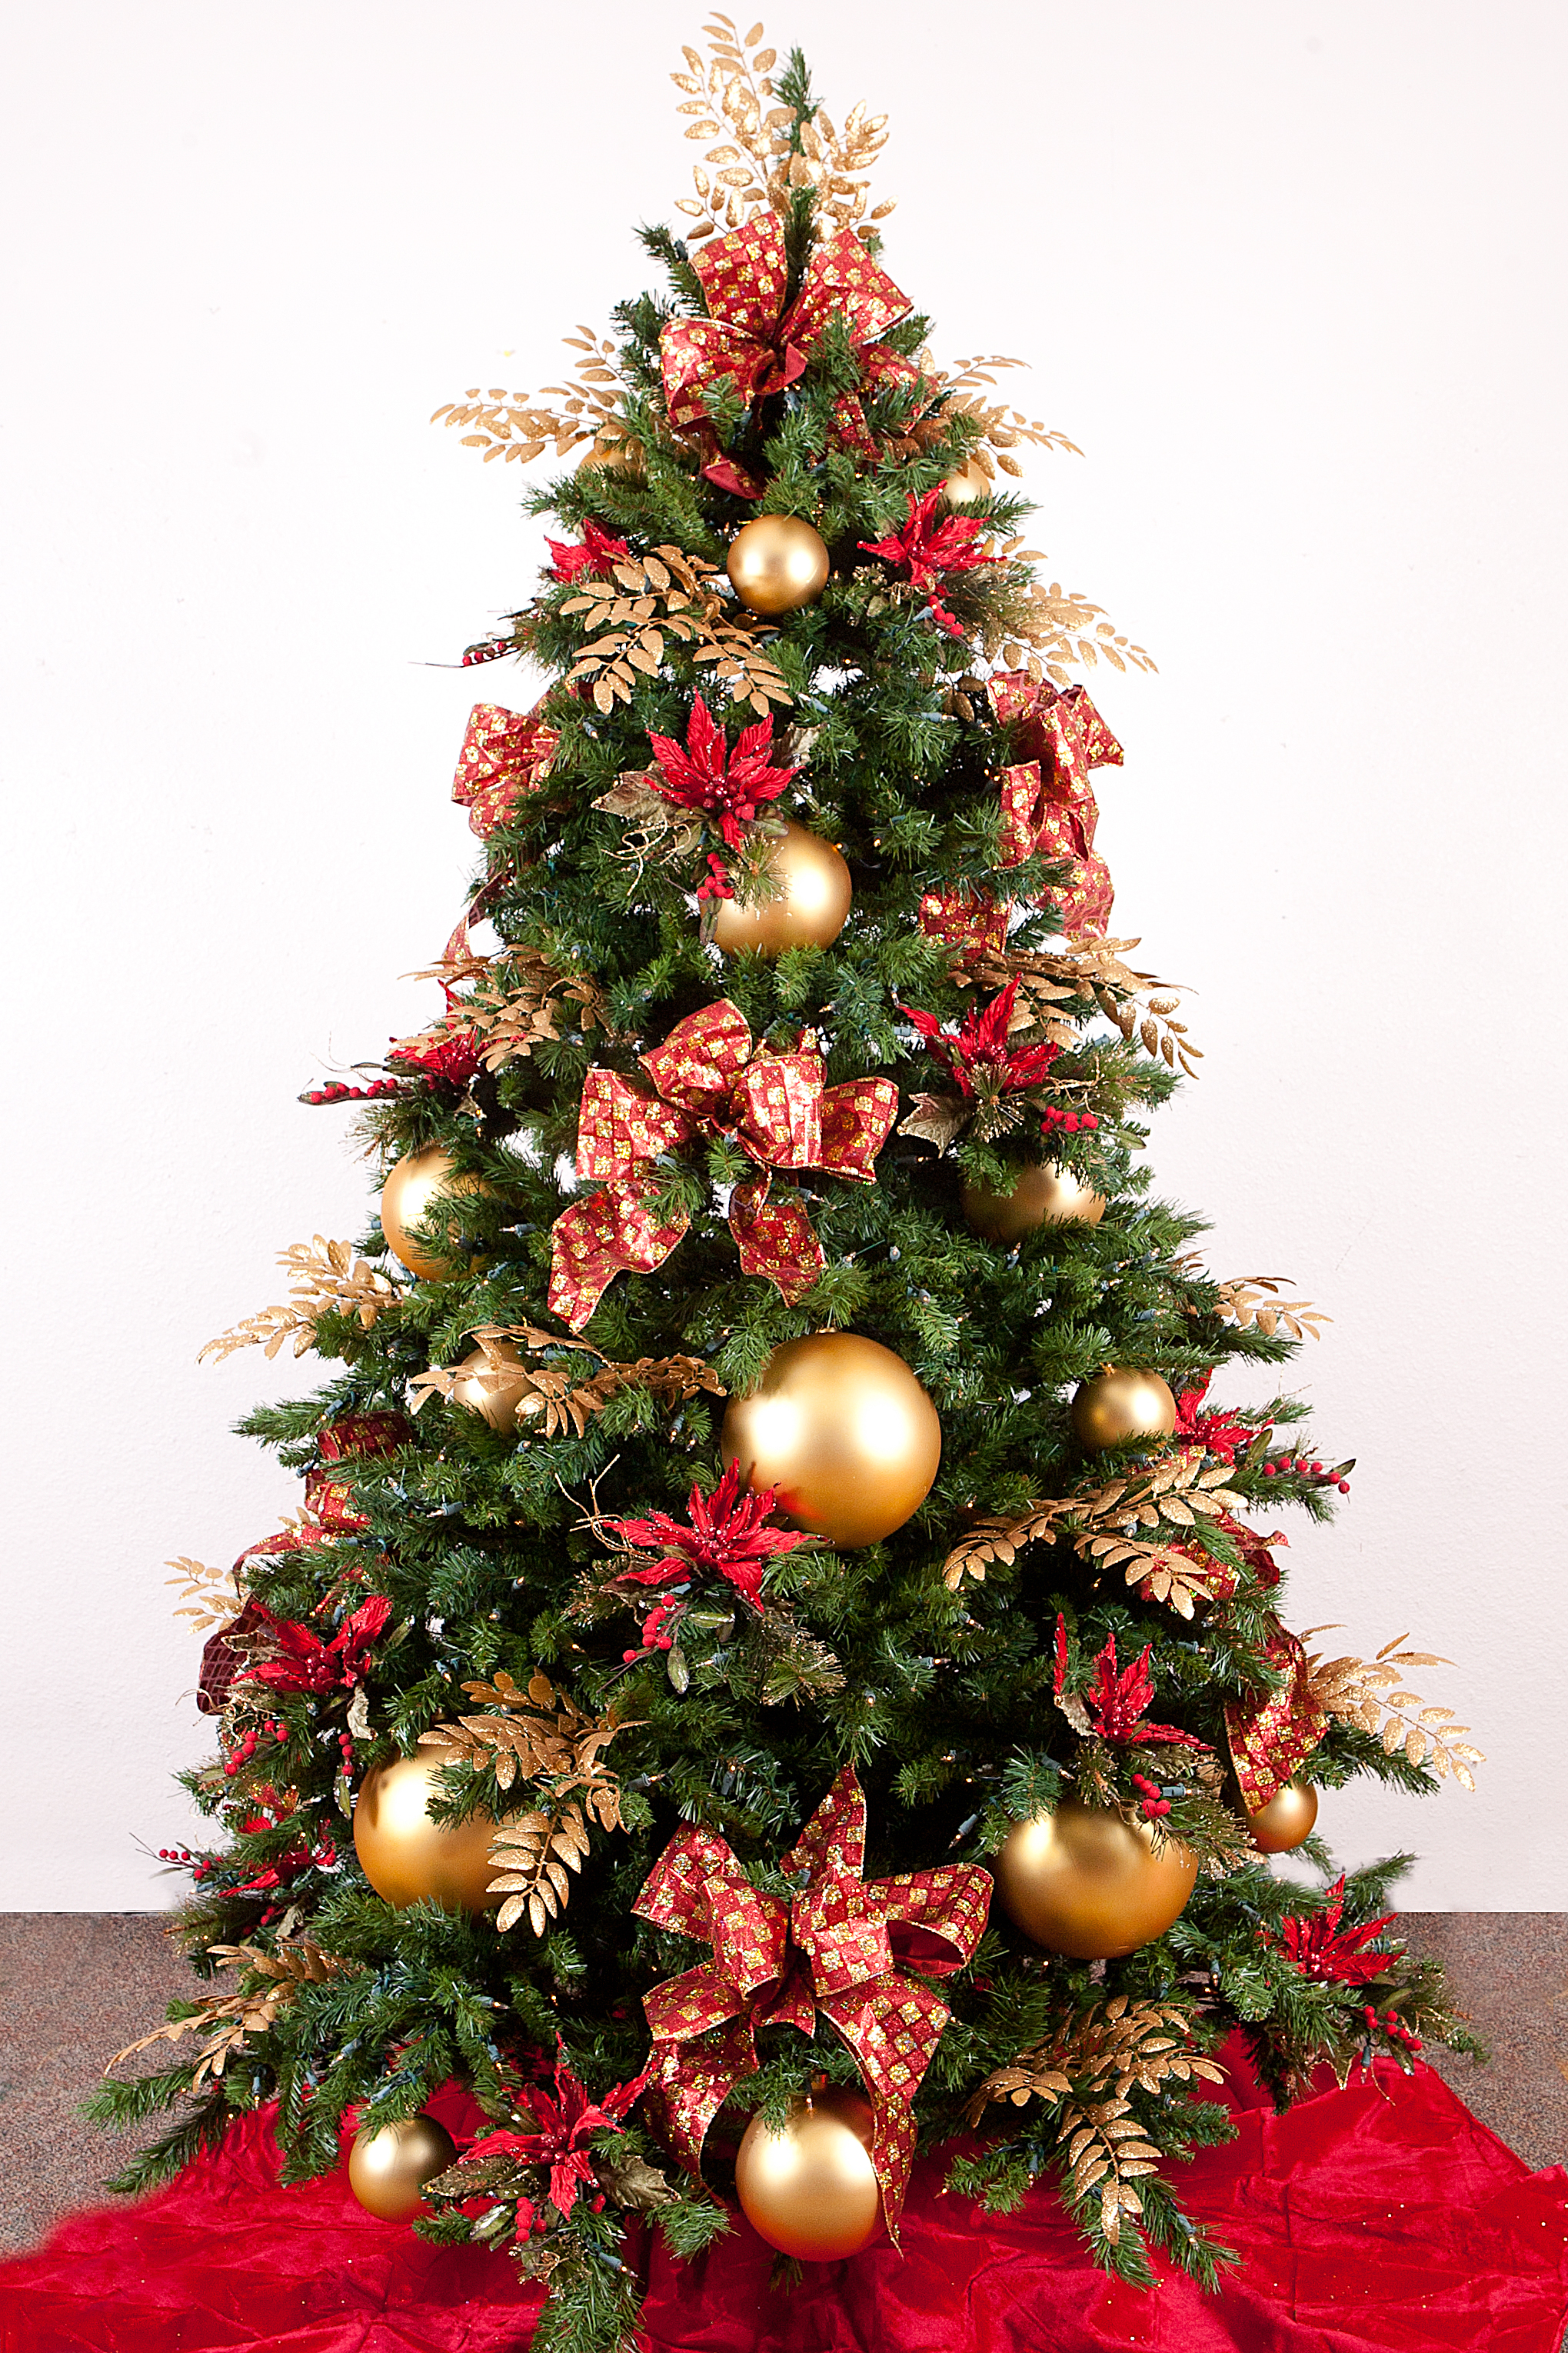 Christmas Tree Ideas Show Me Decorating: christmas tree ornaments ideas